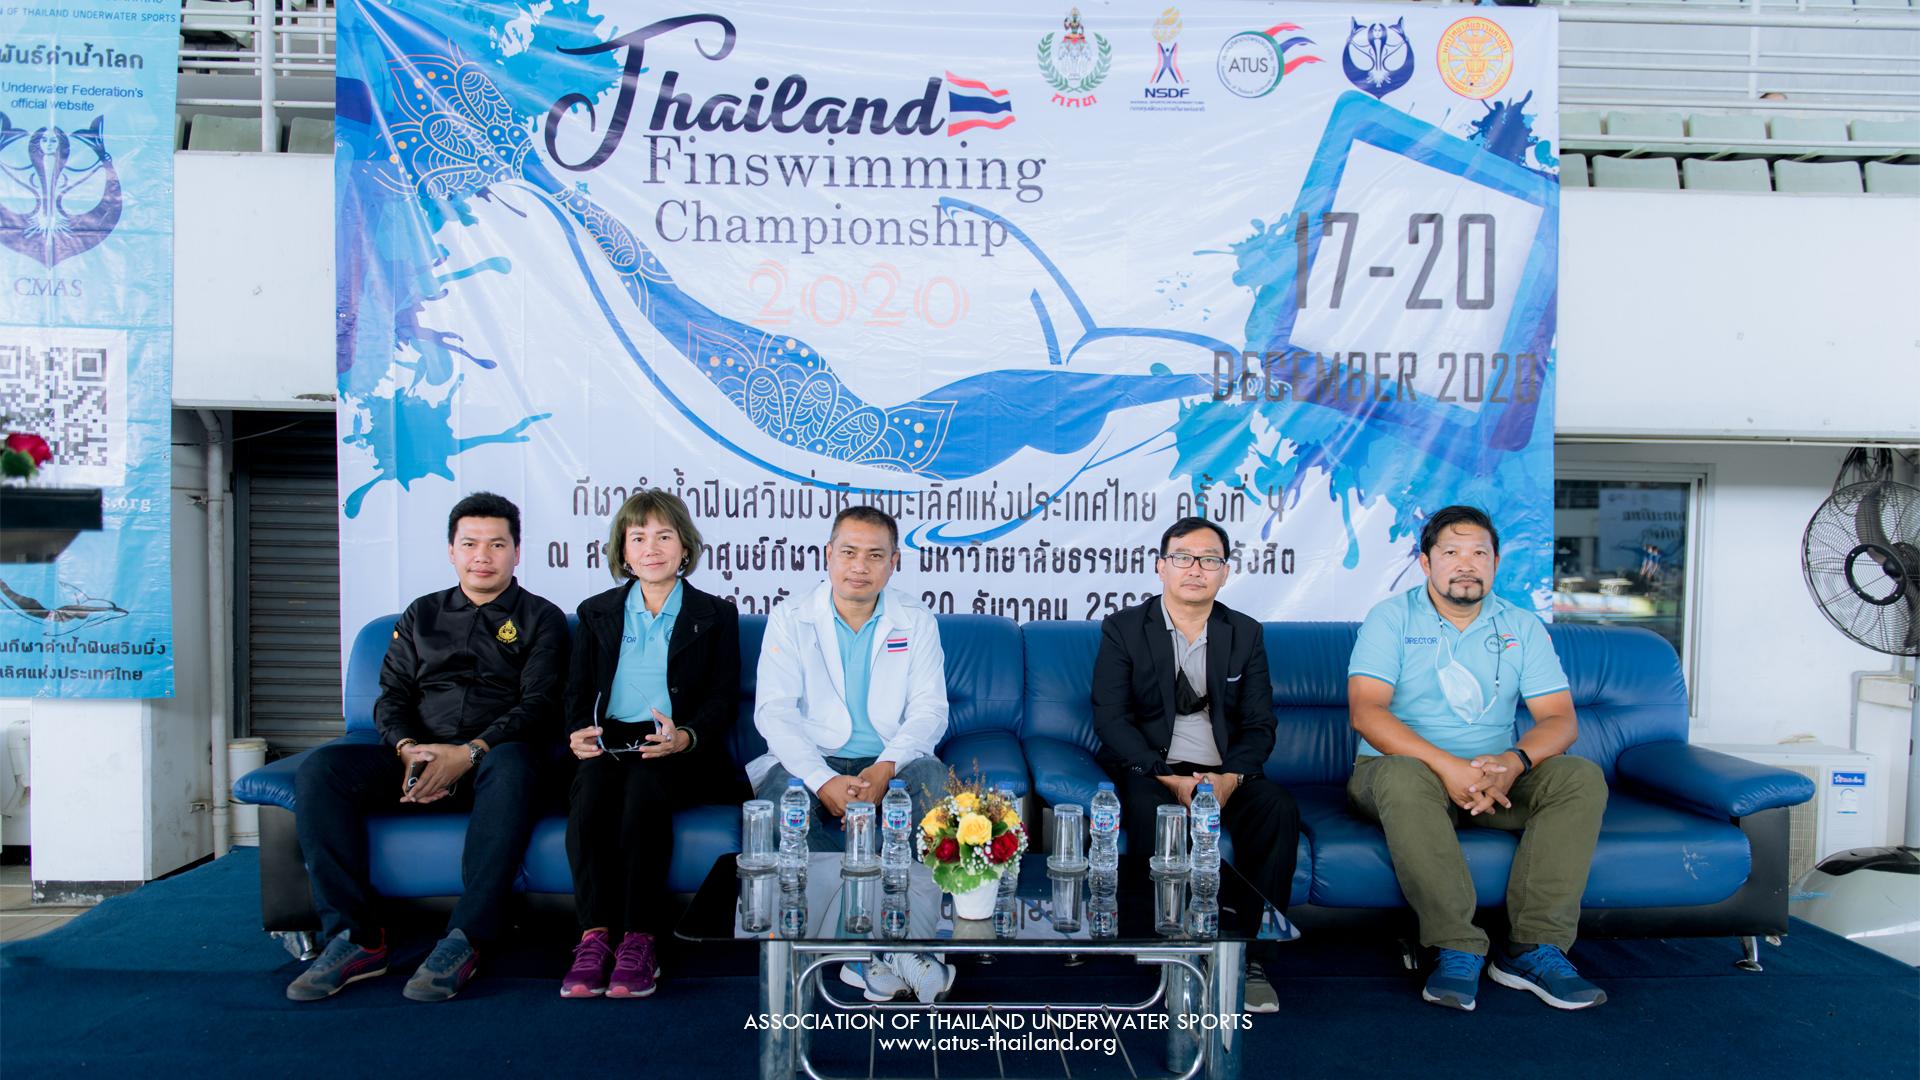 Thailand Finswimming Championships 2020